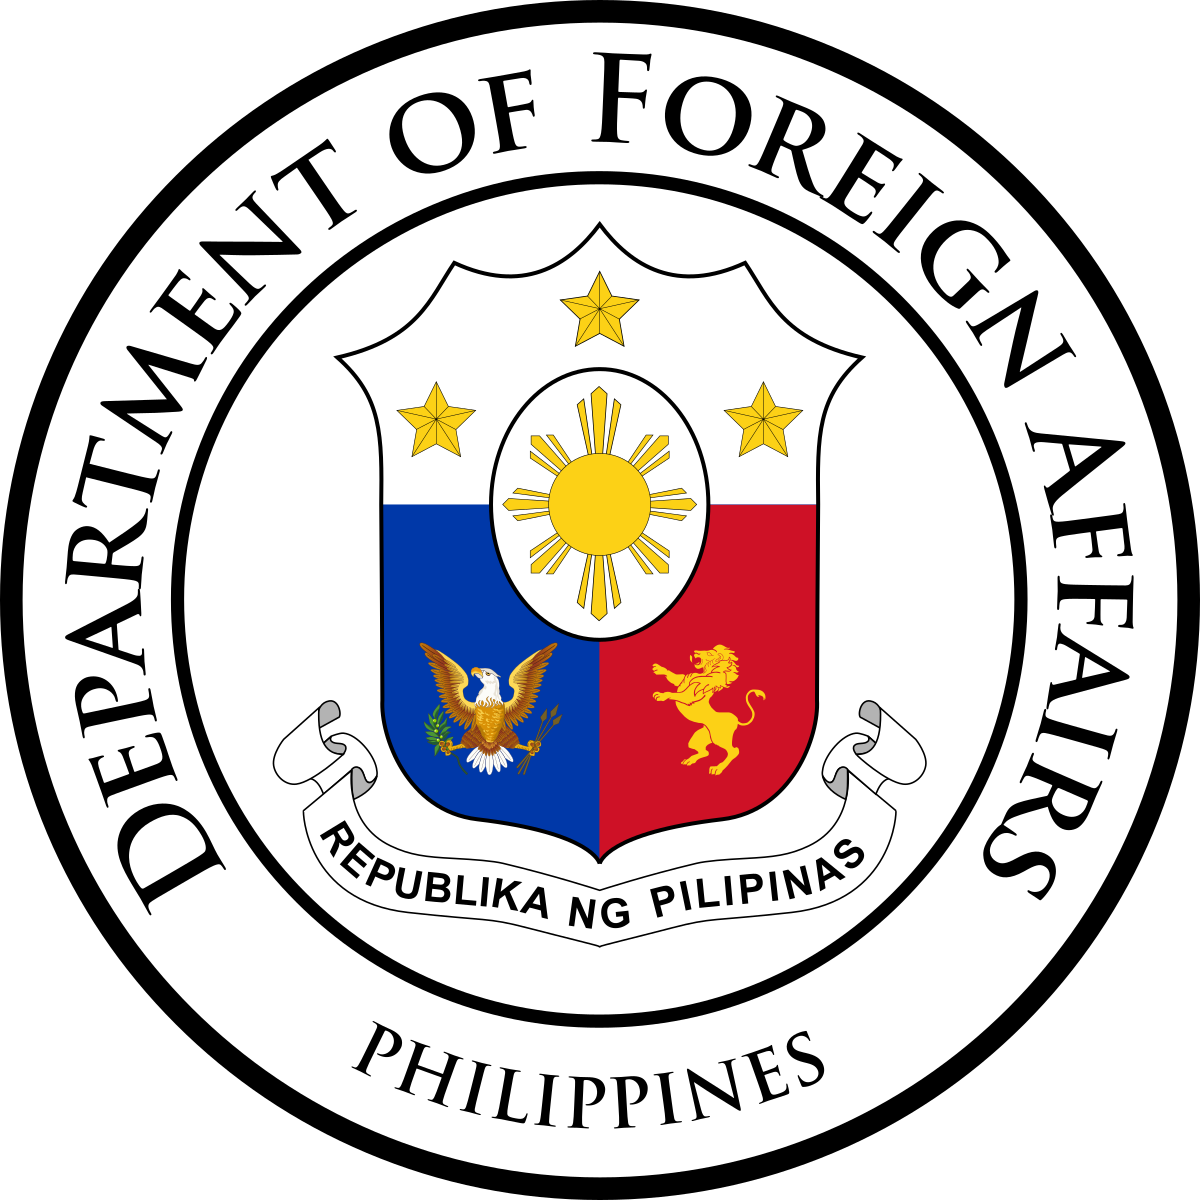 Republic of Philippines Department of Foreign Affairs